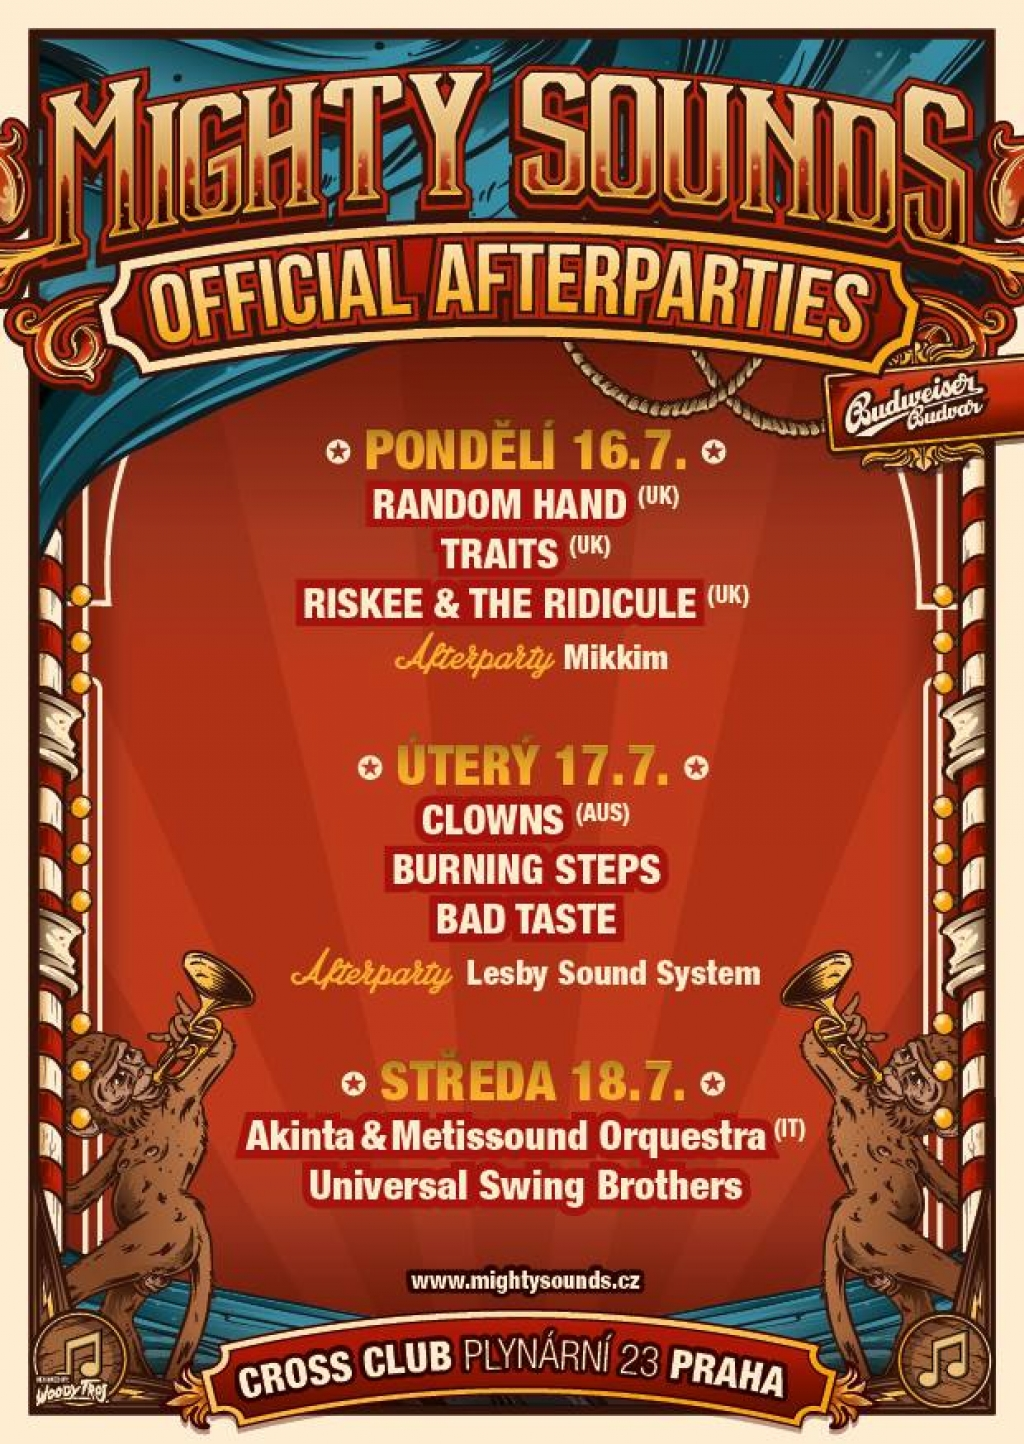 Mighty Sounds Offical Afterparties